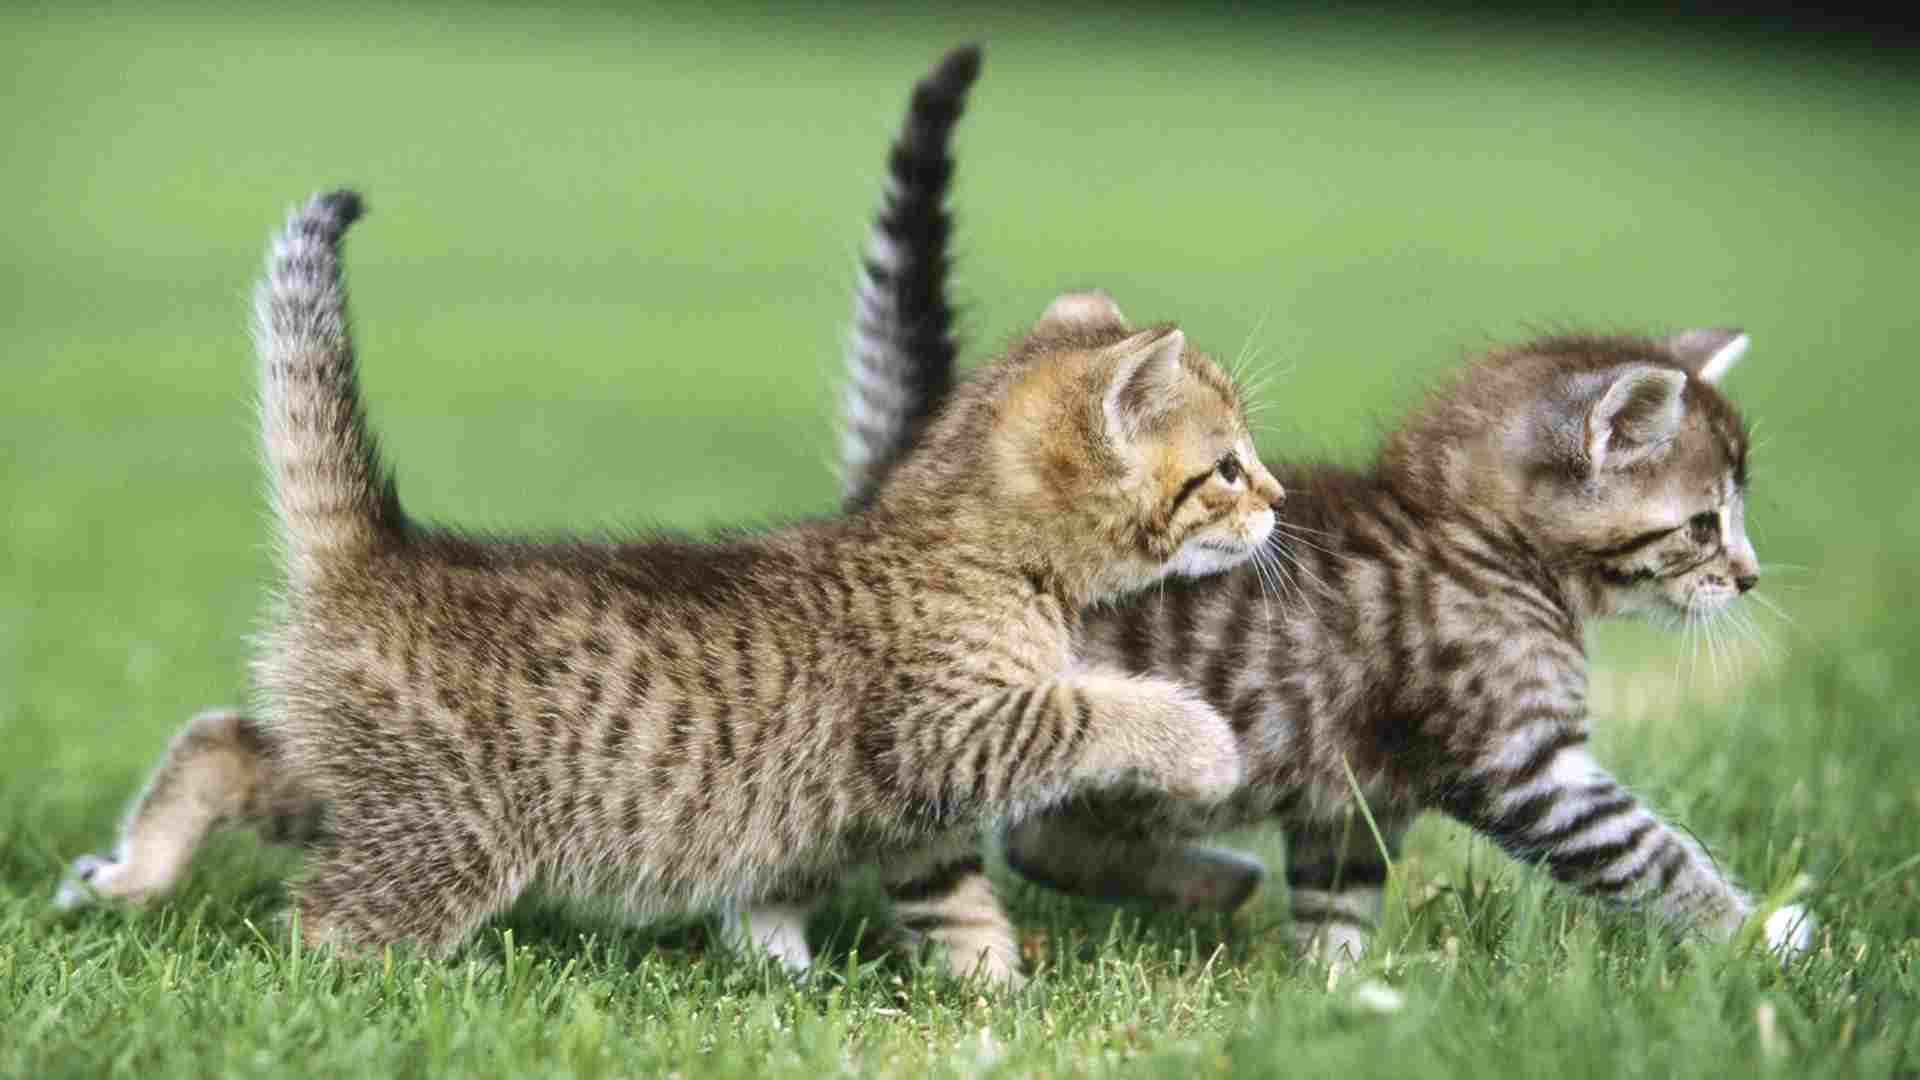 cute kittens quotes - Google Search | MAKES YOU SQUEAL, OR ... |Cute Kittens Quotes